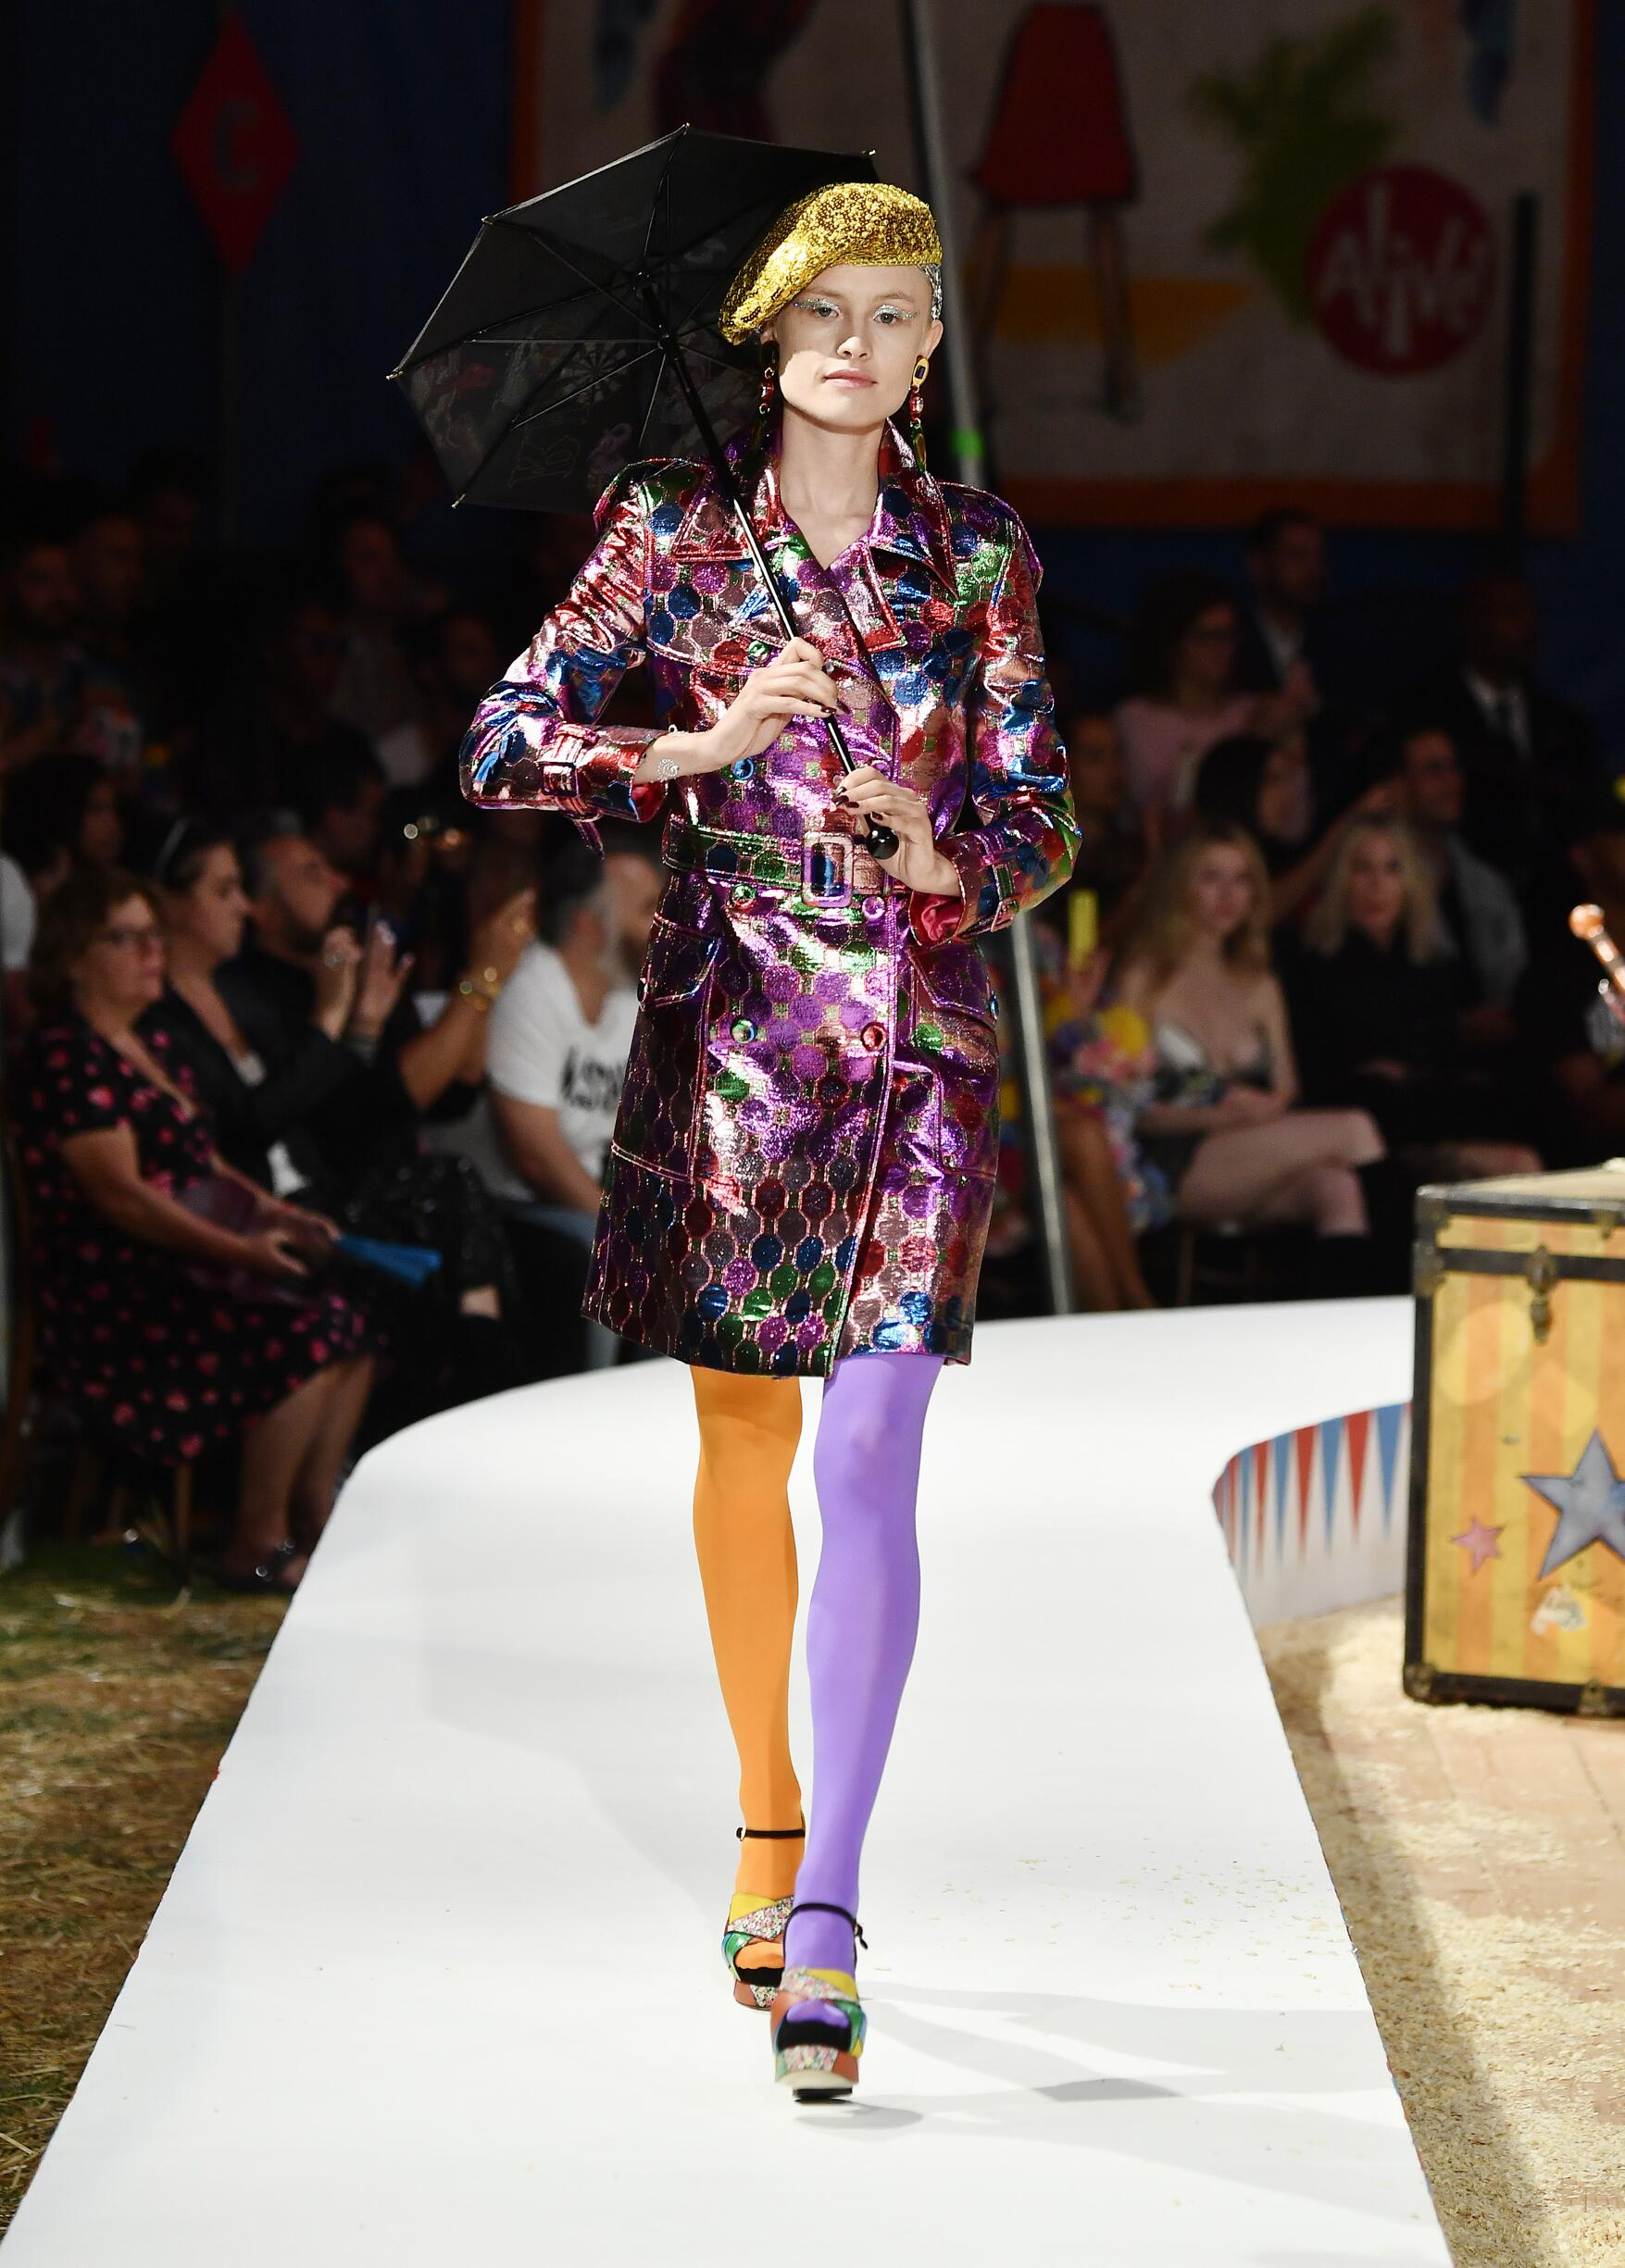 Moschino Spring Summer 2019 Menswear and Women's Resort Collection Look 32 Los Angeles